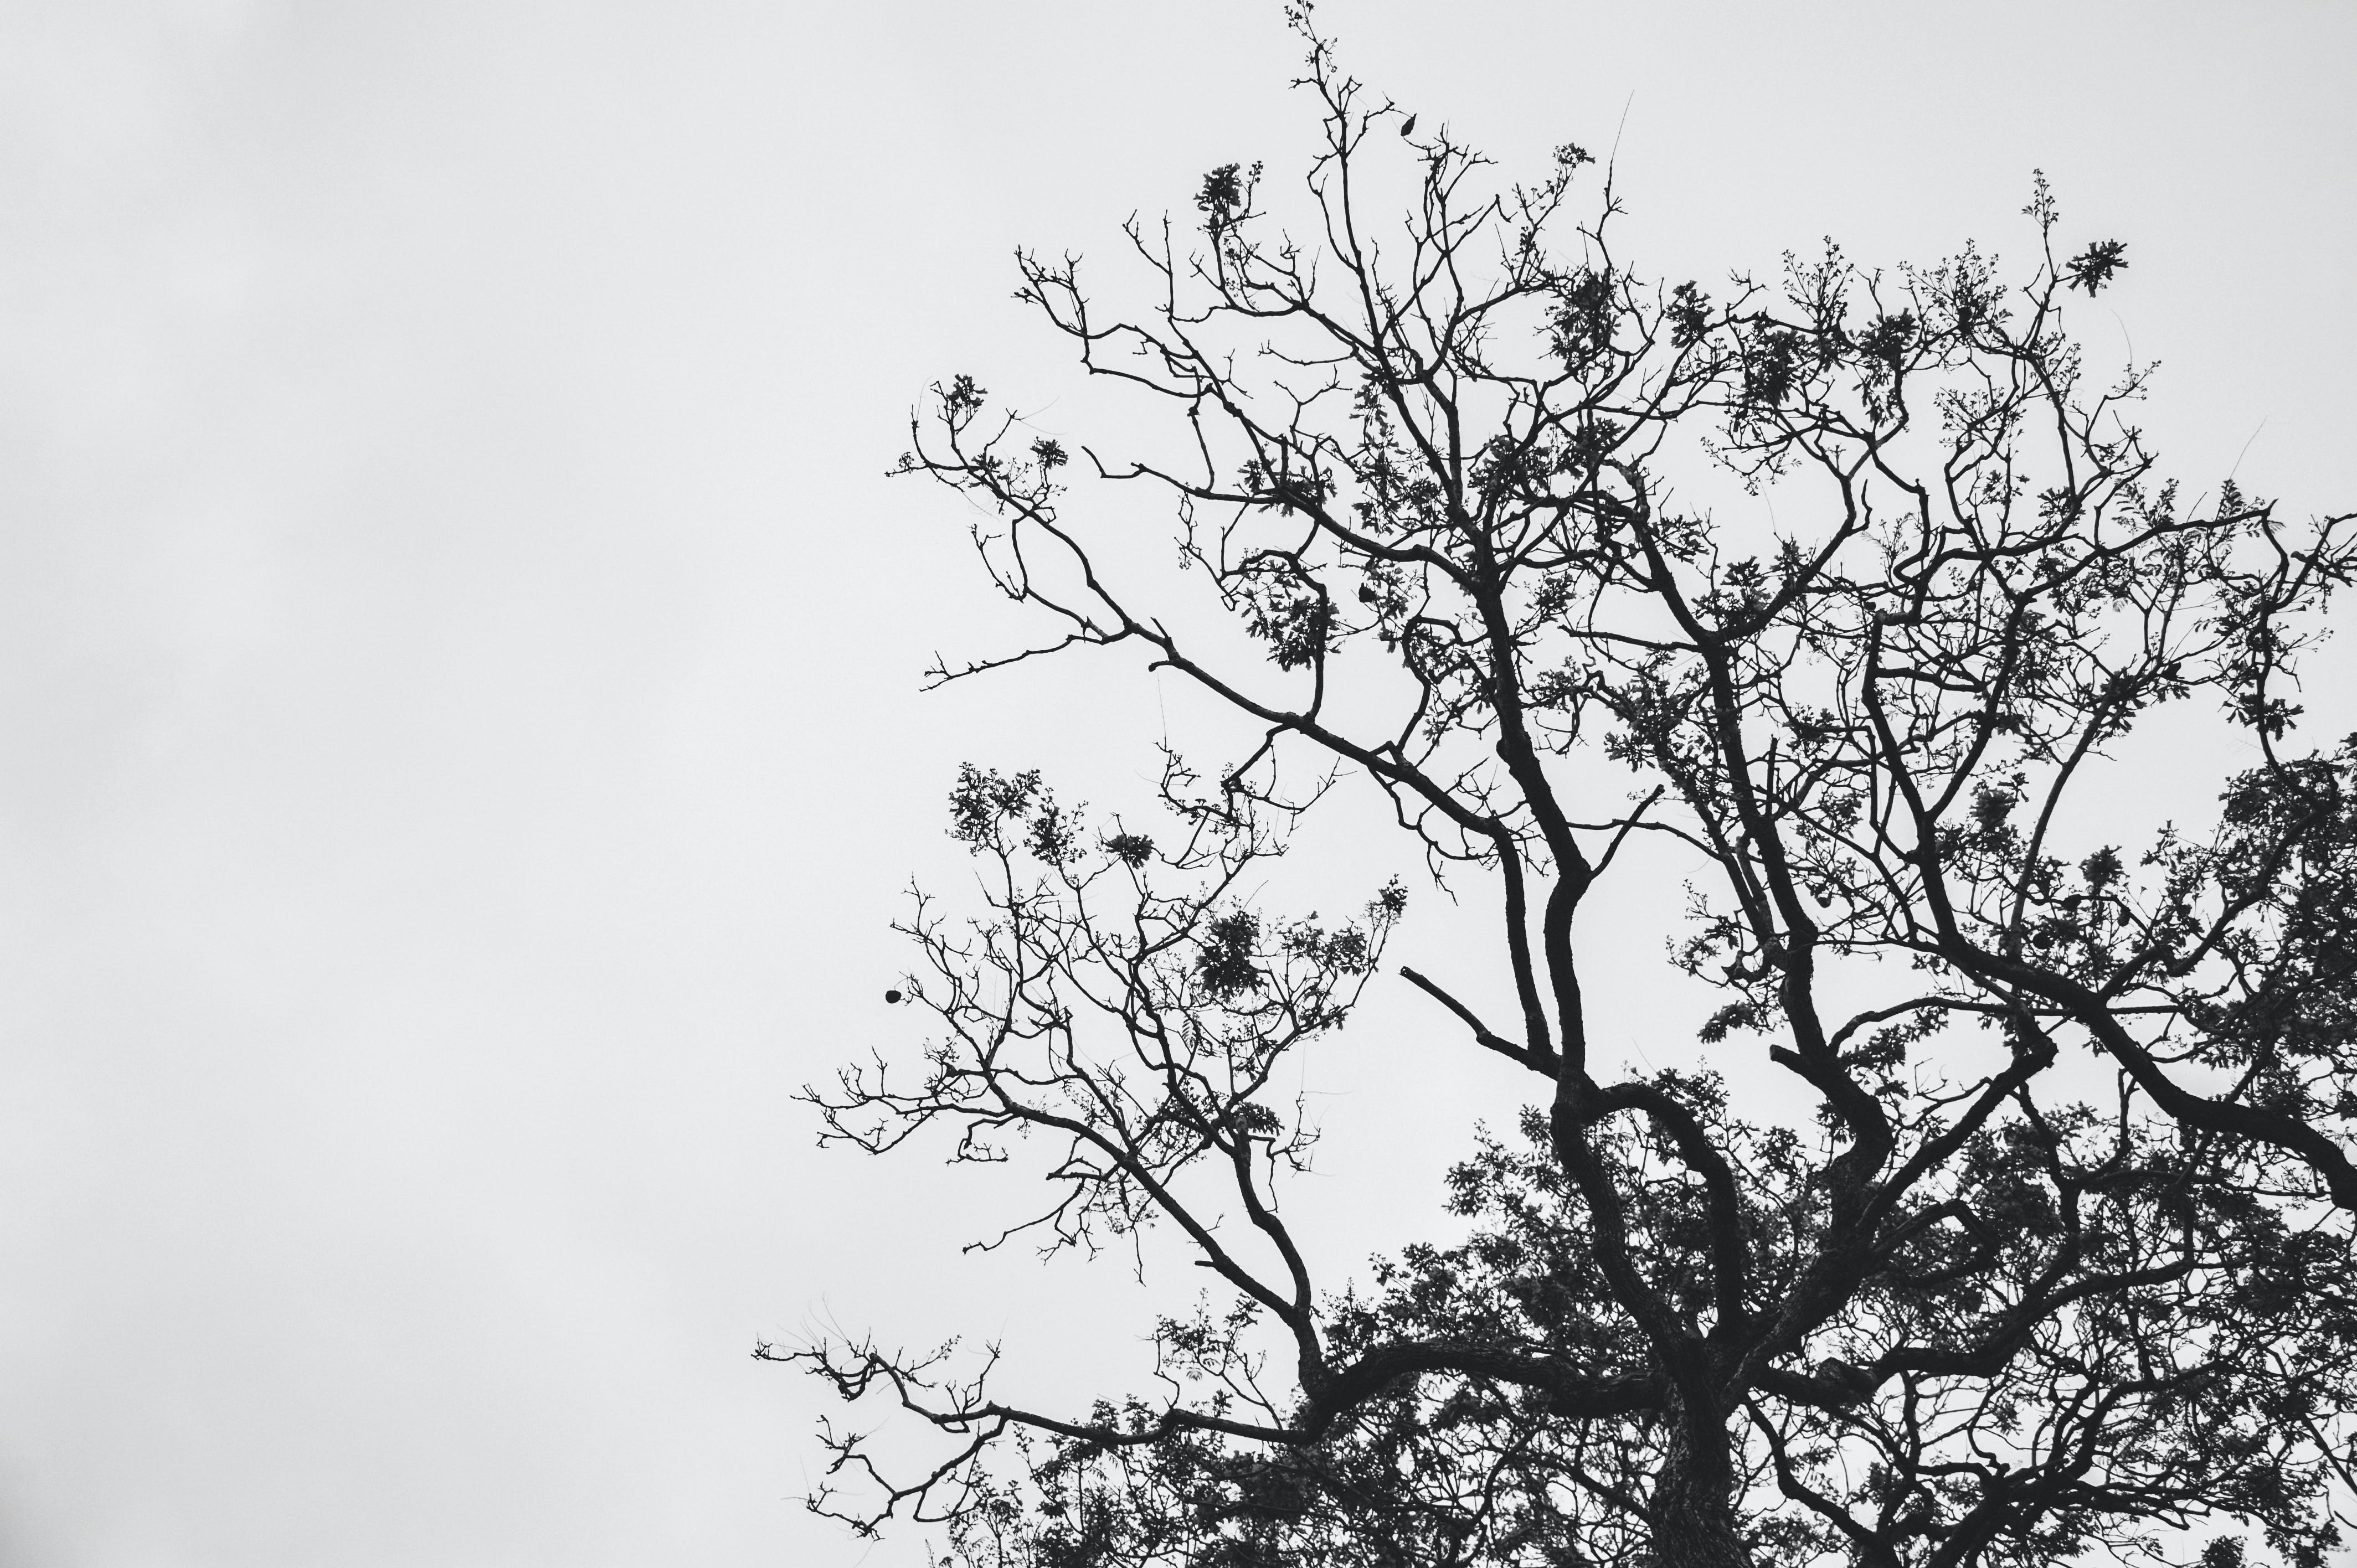 Silhouette Photo of Withered Tree